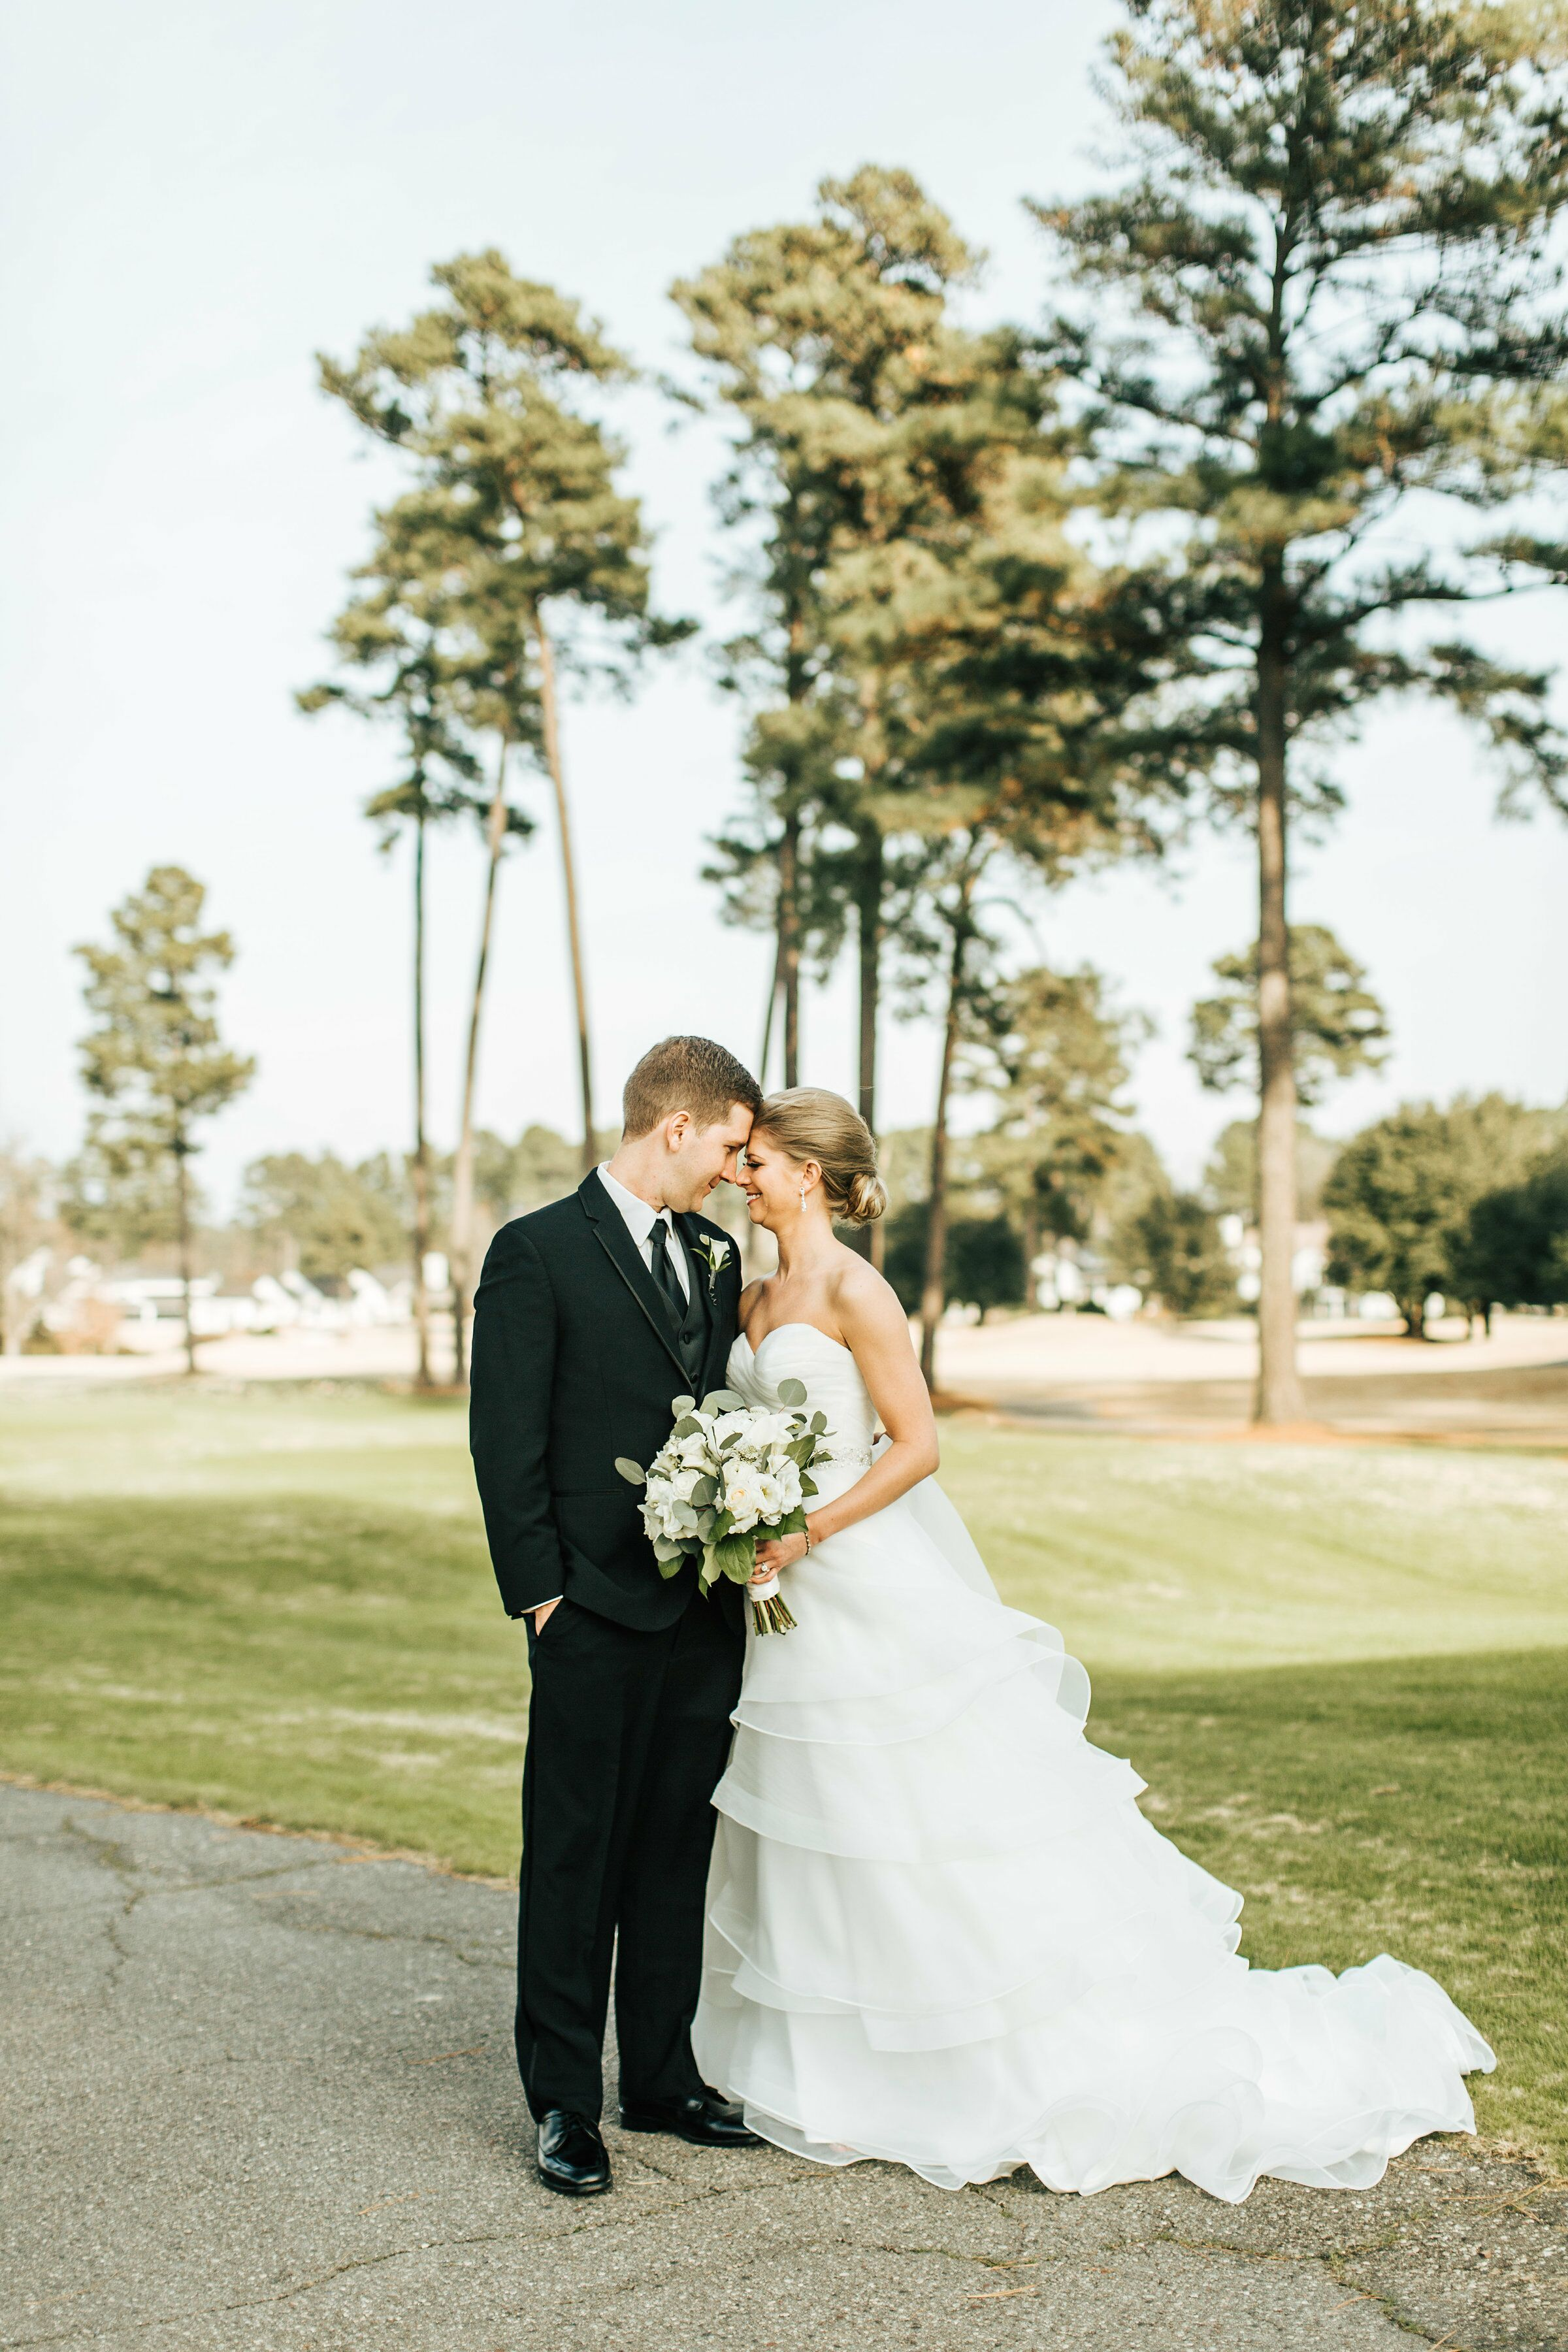 Wedding Venues Greenville Nc | Wedding Venues In Greenville Nc The Knot